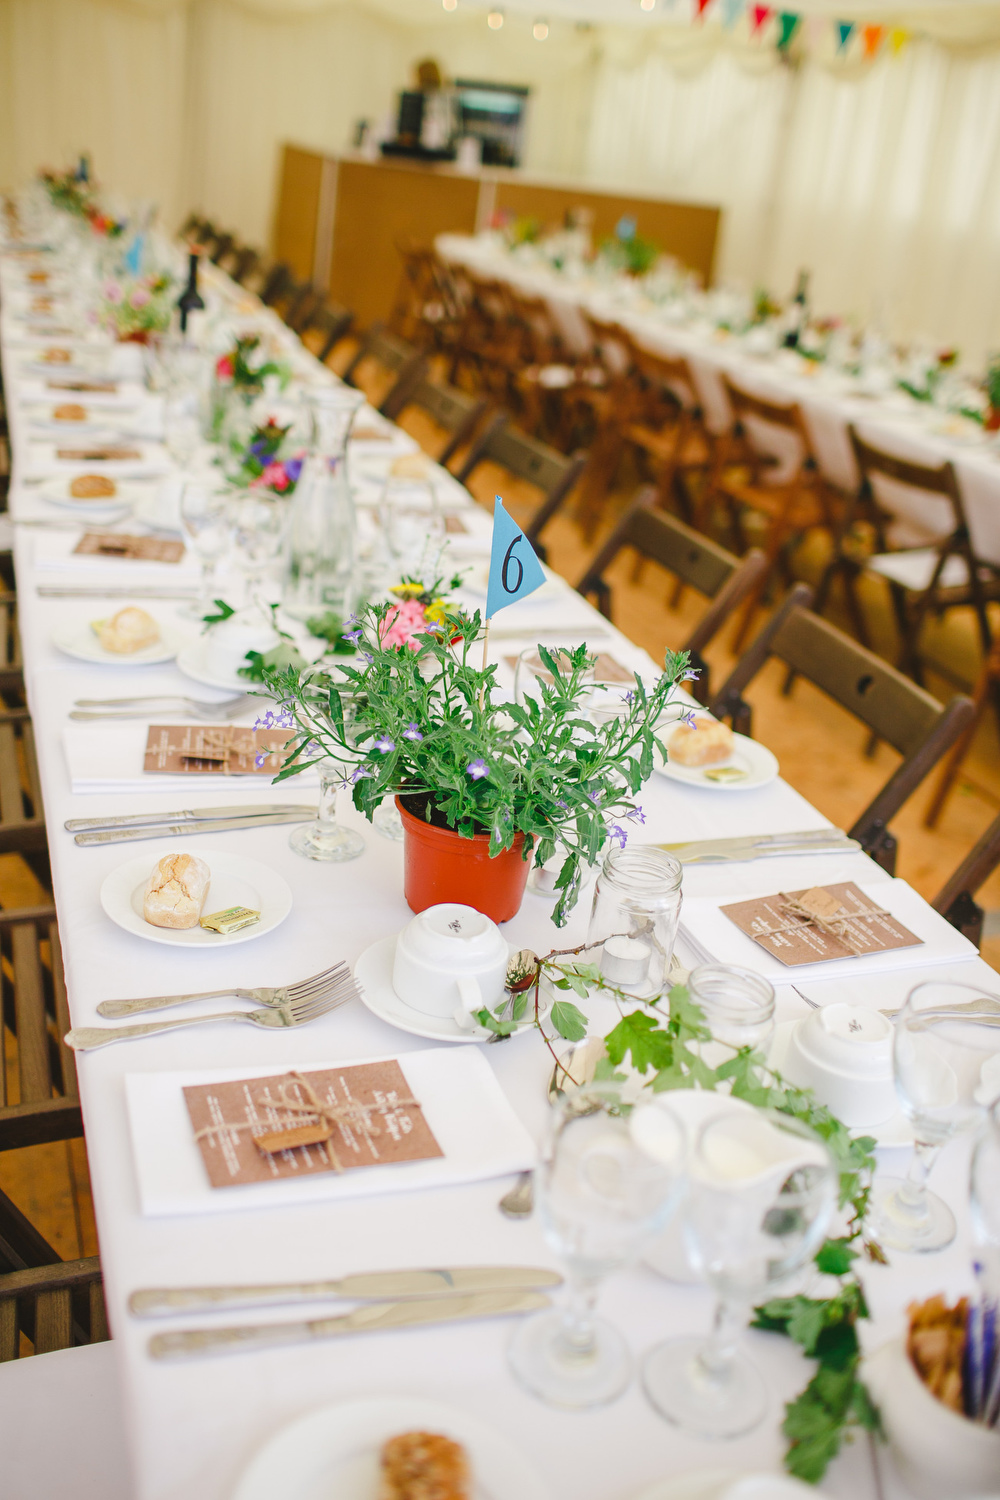 Mussenden temple wedding venue in northern ireland with a tara keely image by a hrefhttpgatherandtides image by gather tides photography mussenden temple wedding venue in northern ireland junglespirit Image collections